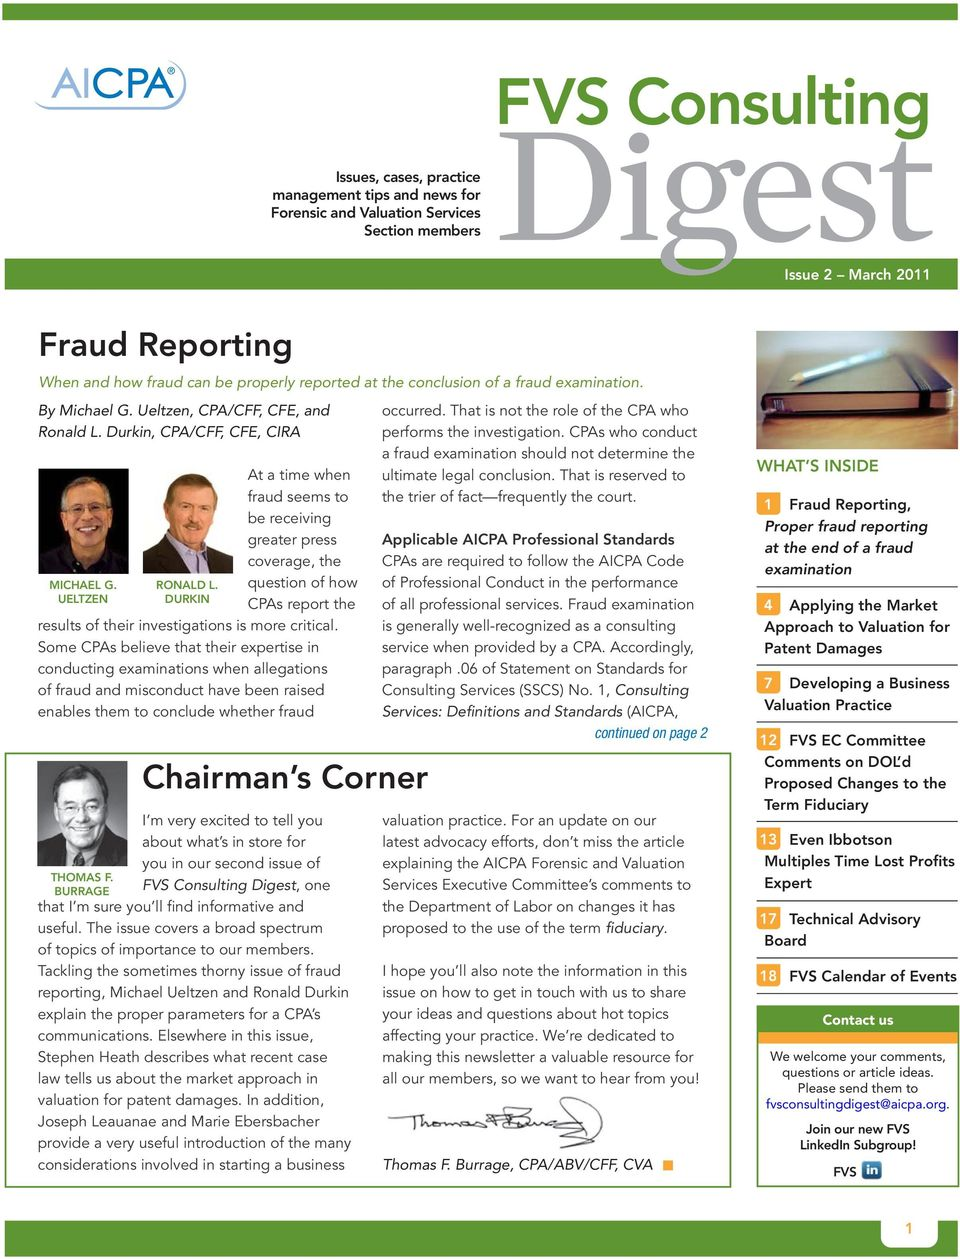 UELTZEN At a time when fraud seems to be receiving greater press coverage, the question of how CPAs report the results of their investigations is more critical.